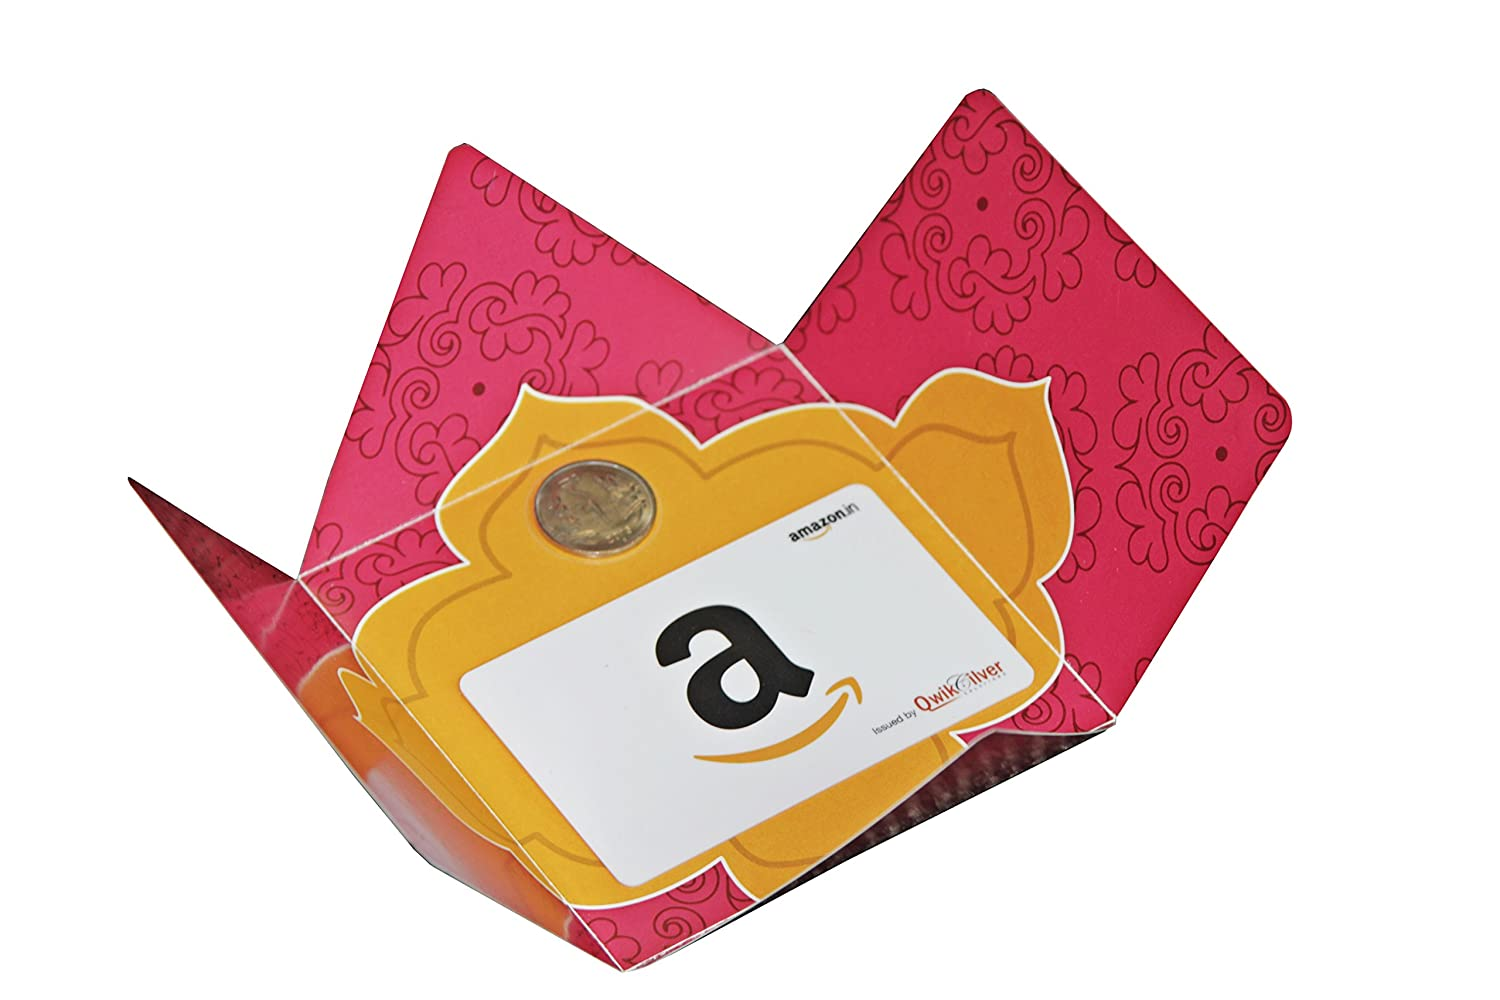 Amazon.in Gift Card in Festive Bloom Gift Box Pink